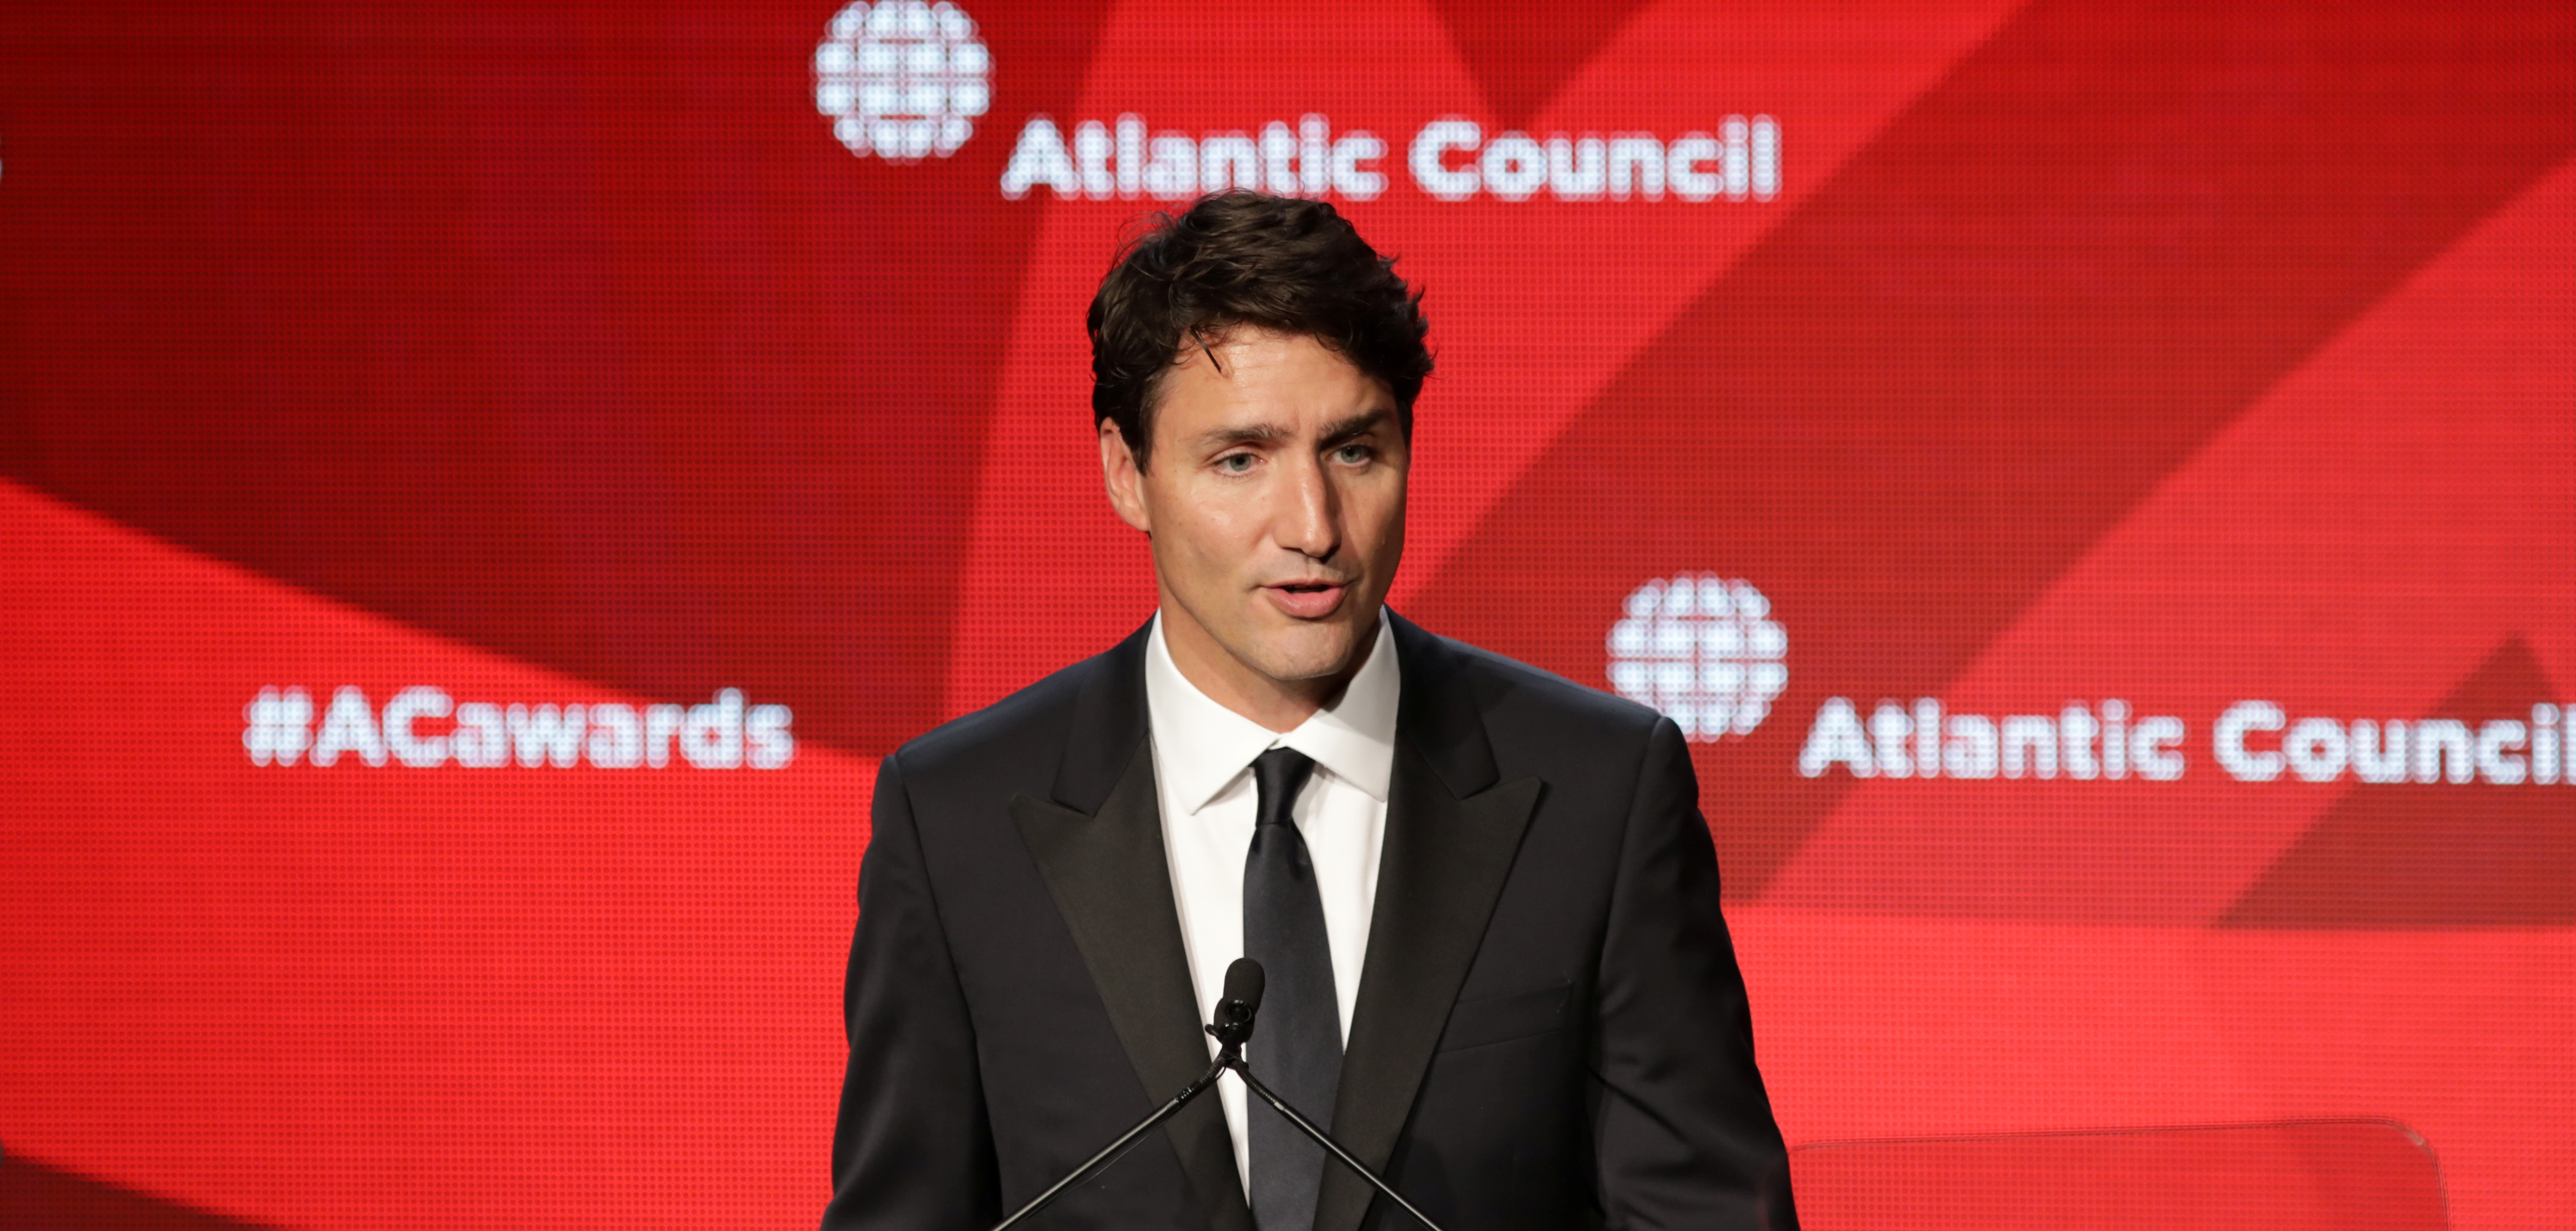 Canadian Prime Minister Justin Trudeau speaks after receiving the Global Citizen Award from the Atlantic Council in New York, U.S. September 19, 2017. REUTERS/Stephen Yang - RC1FFCB16B80